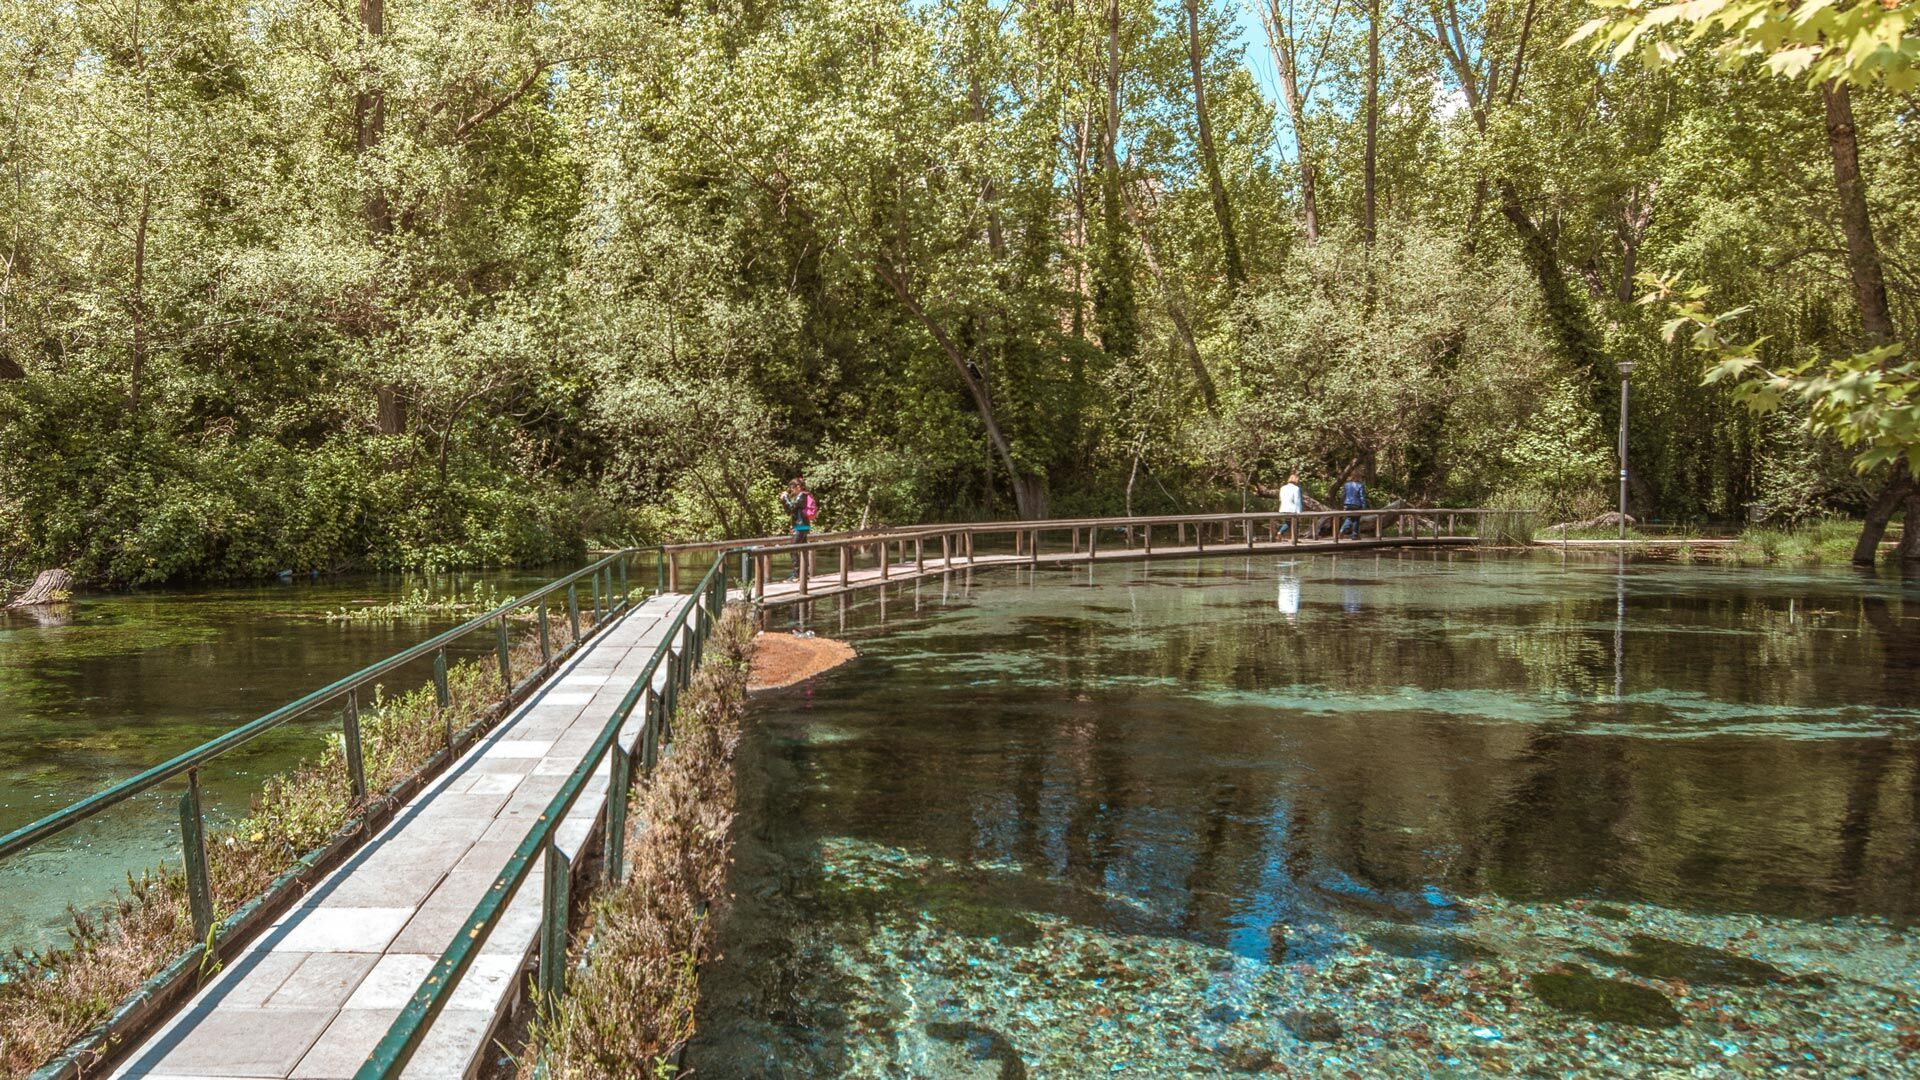 In Agia Varvara park, bubbling springs flow into canals and ponds, watering ancient trees and reminding you of nature's pure beauty